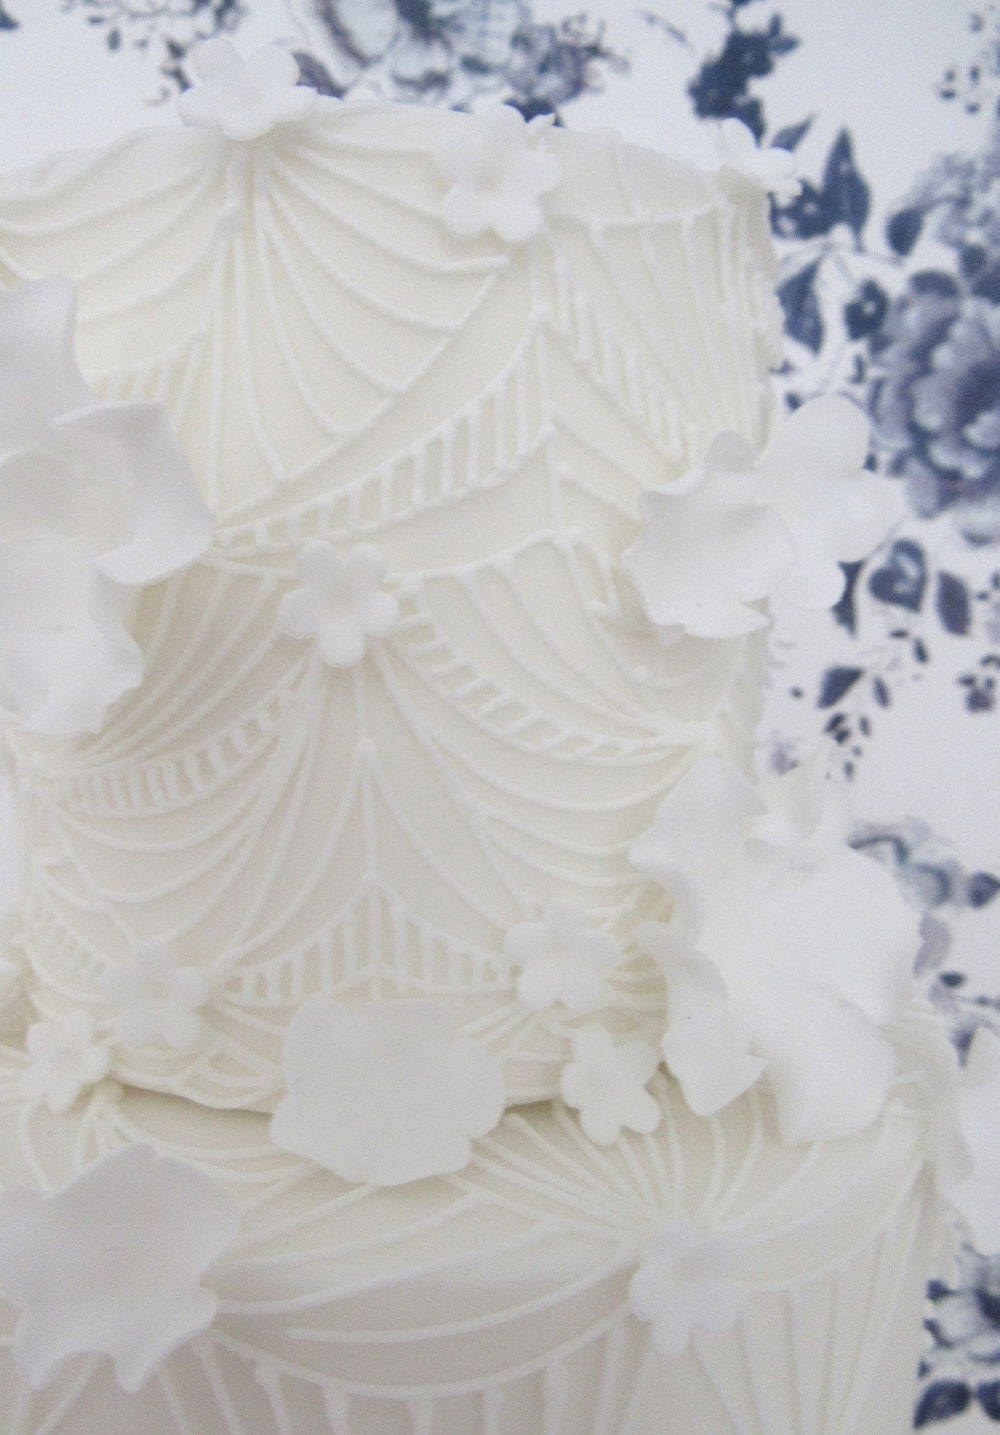 Geometric Lace White Wedding Cake - close up